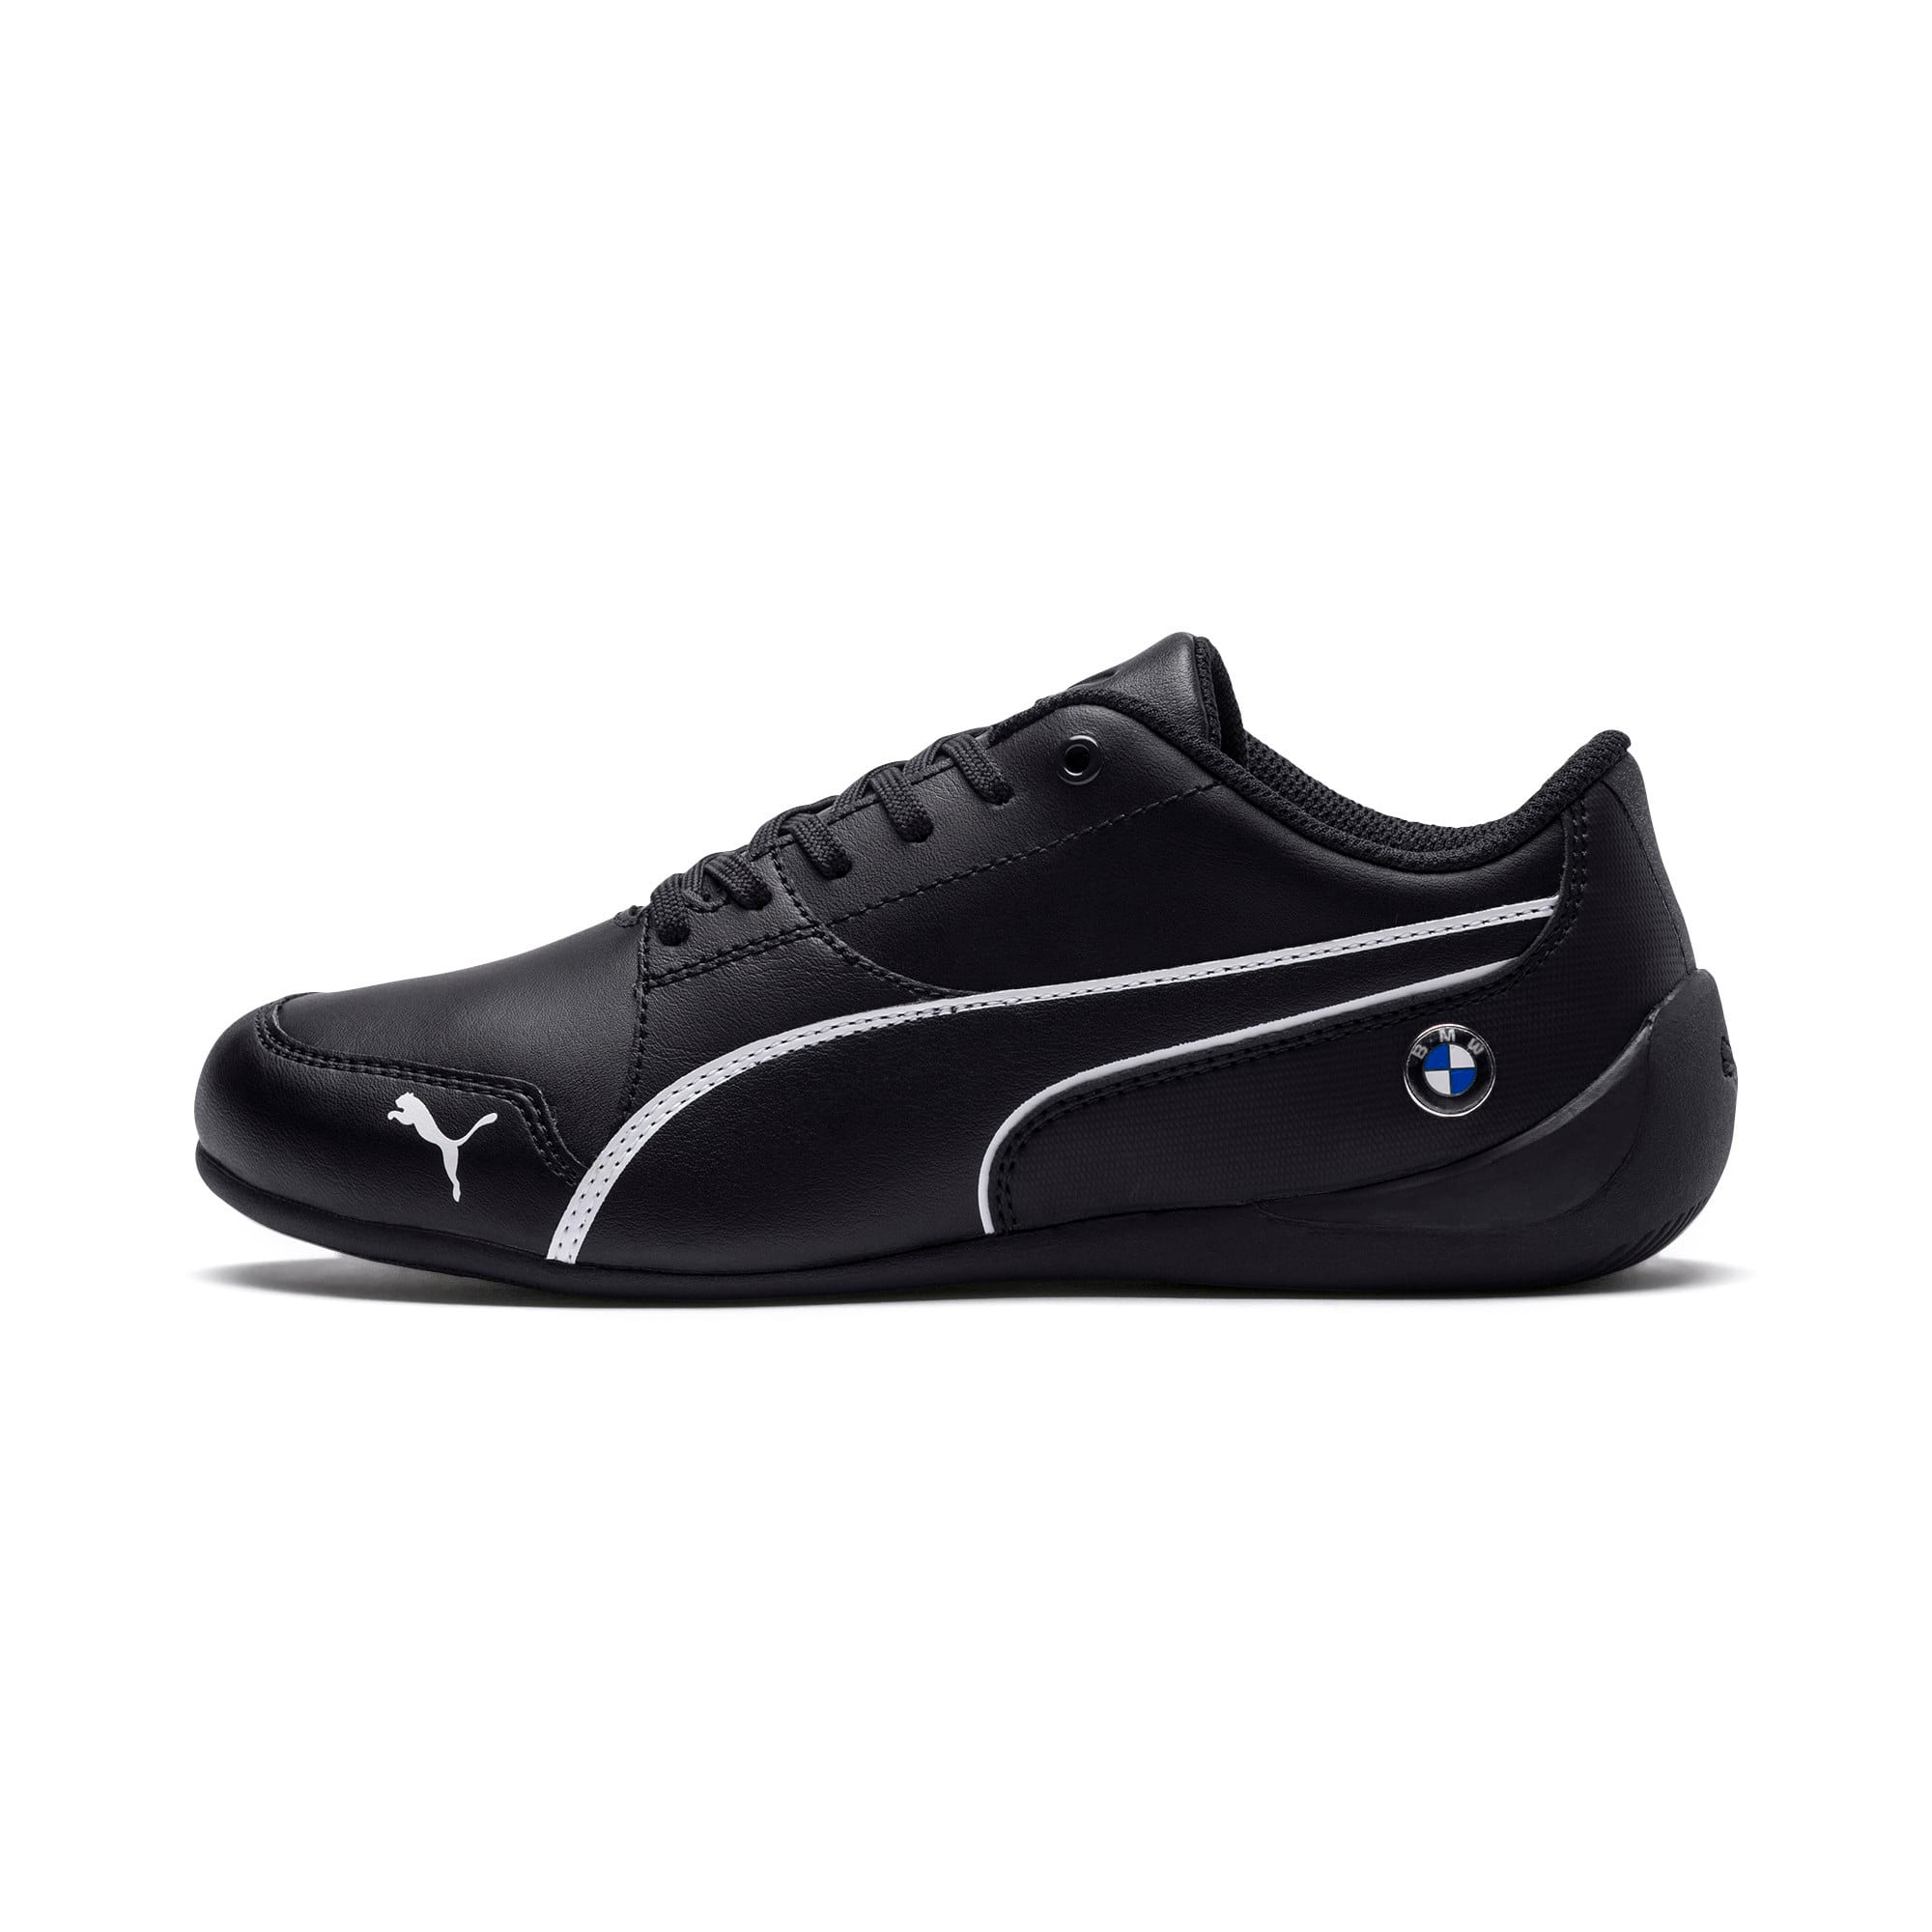 Thumbnail 1 of BMW Motorsport Drift Cat 7 Kids' Trainers, Anthracite-Anthracite, medium-IND